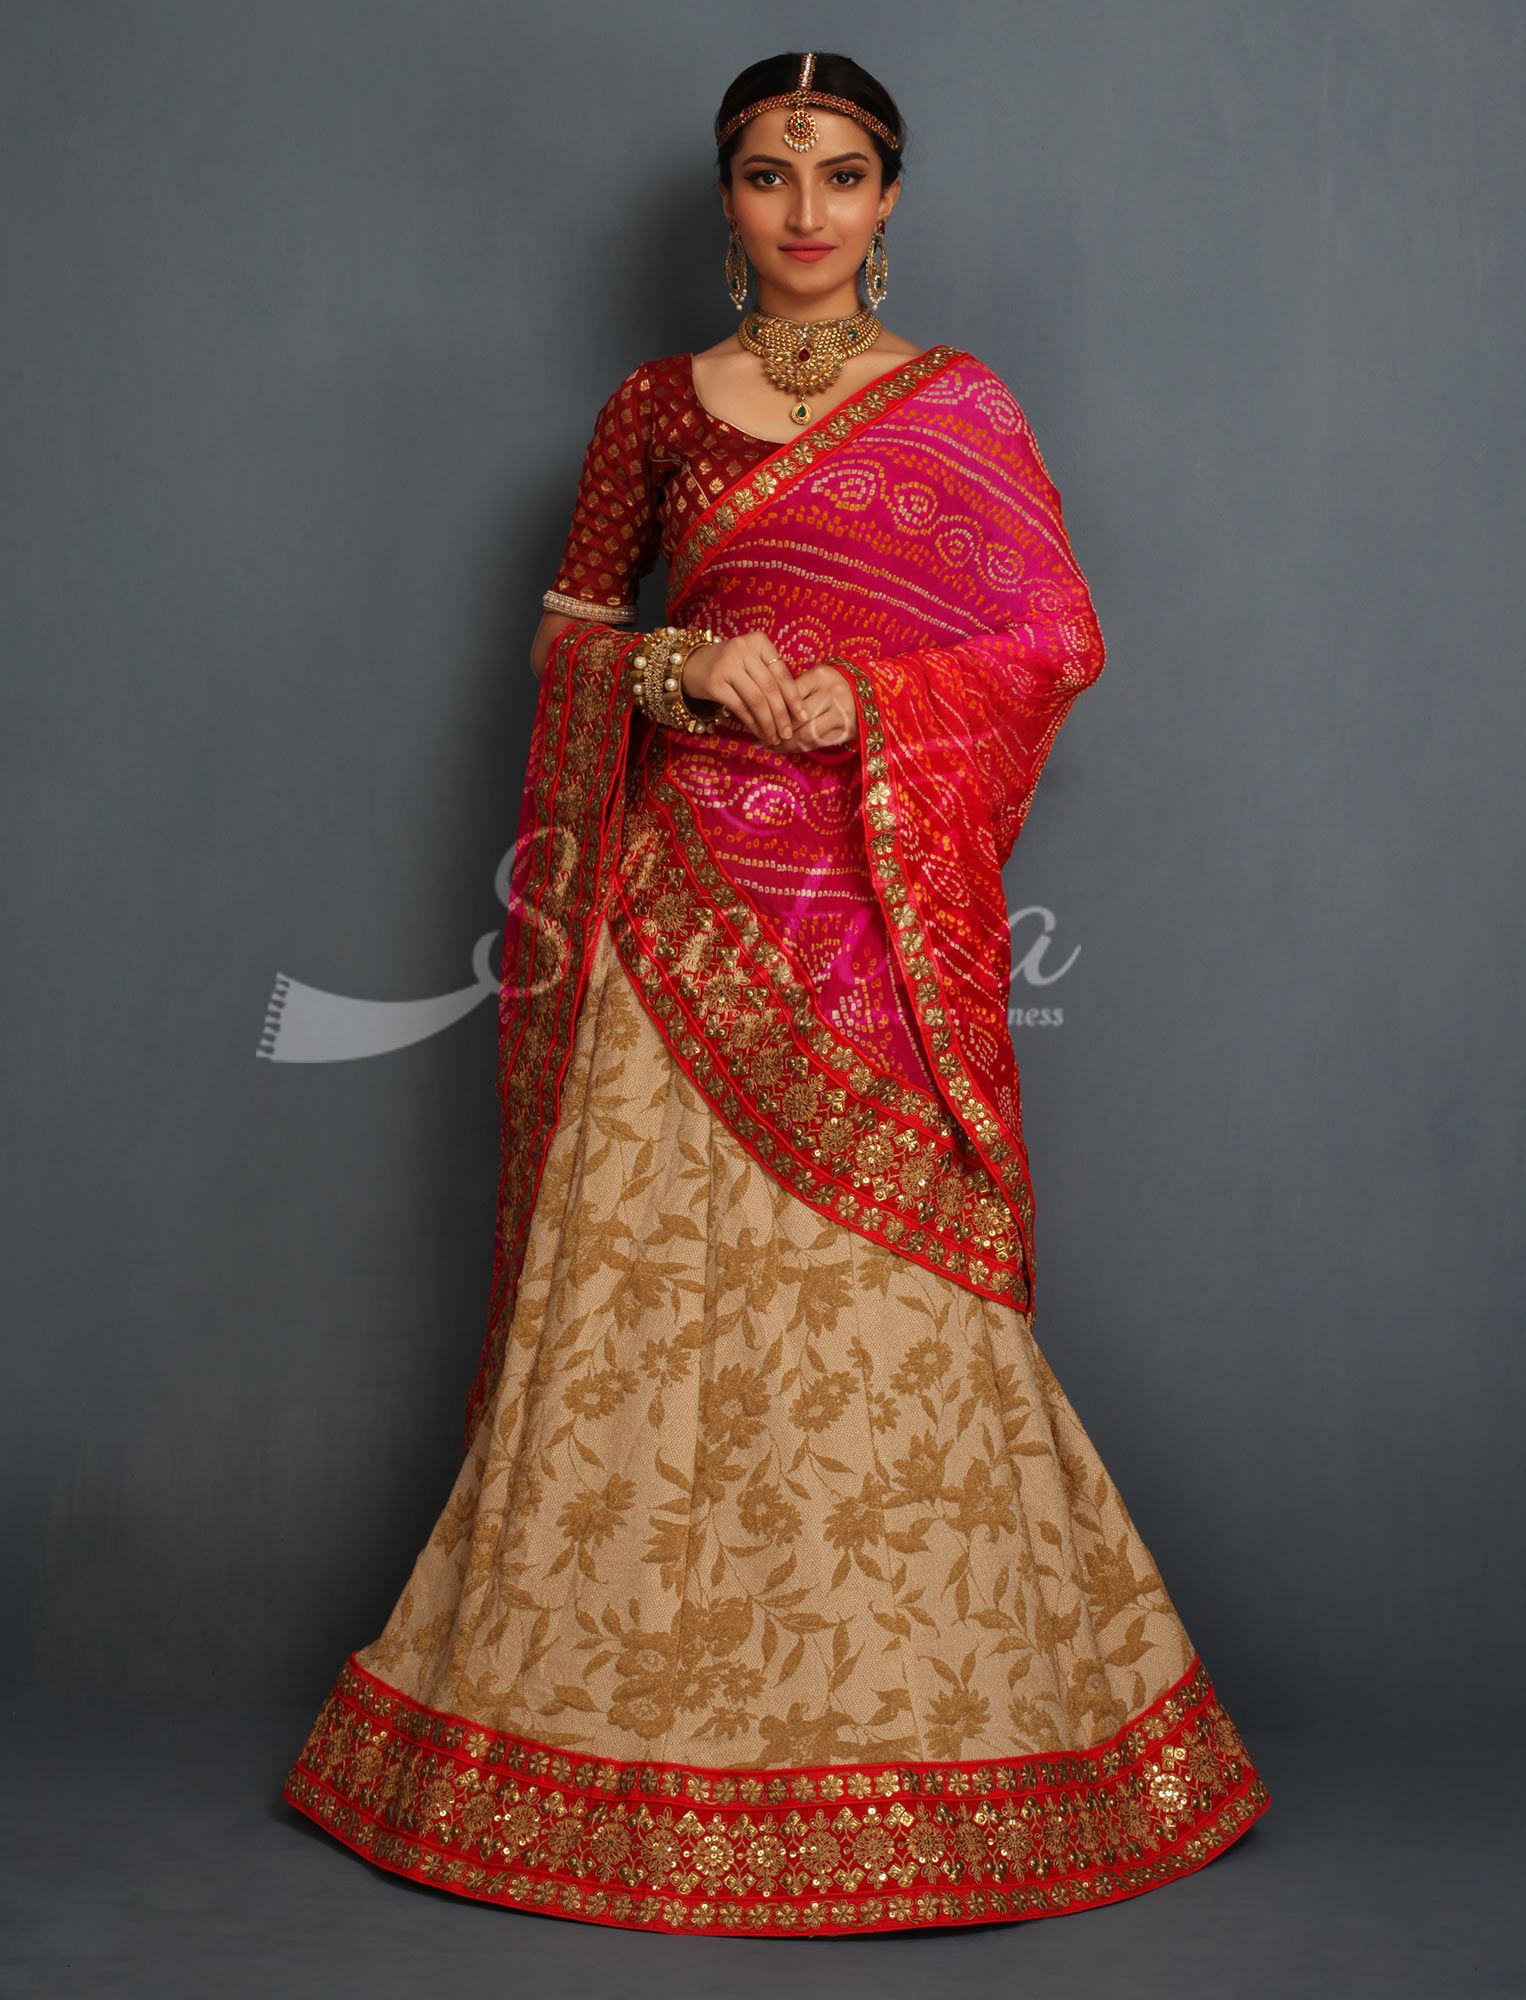 ea2ee0b317 Tanya Cream Full Gold Thread Work With Contrast Bandhej Odhni Designer  Rajasthani Lehenga